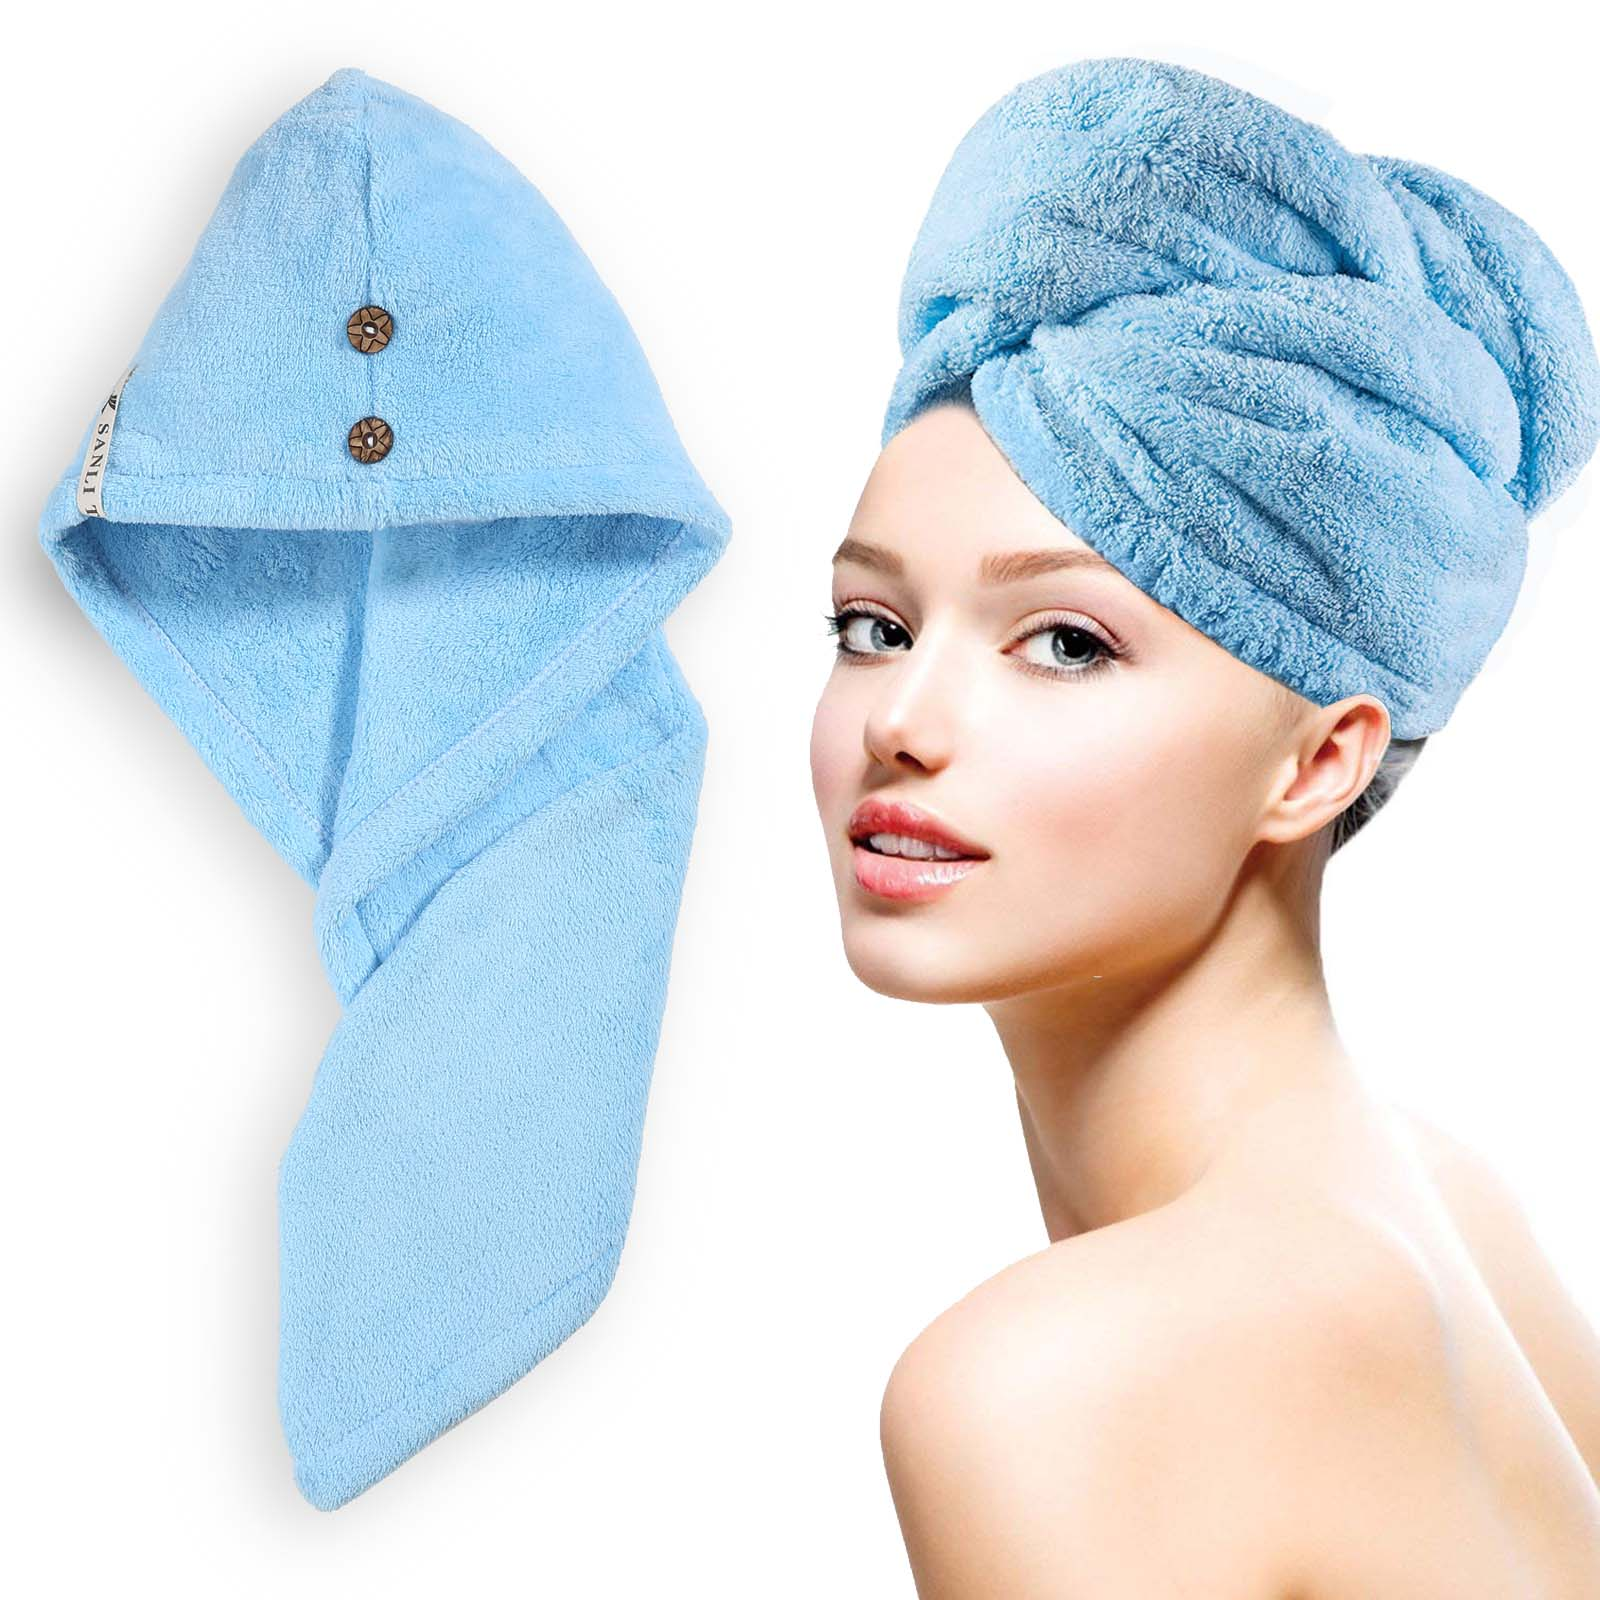 Microfiber Travel Towels Australia: Highly Absorbent Microfiber Large Travel Towel With FREE